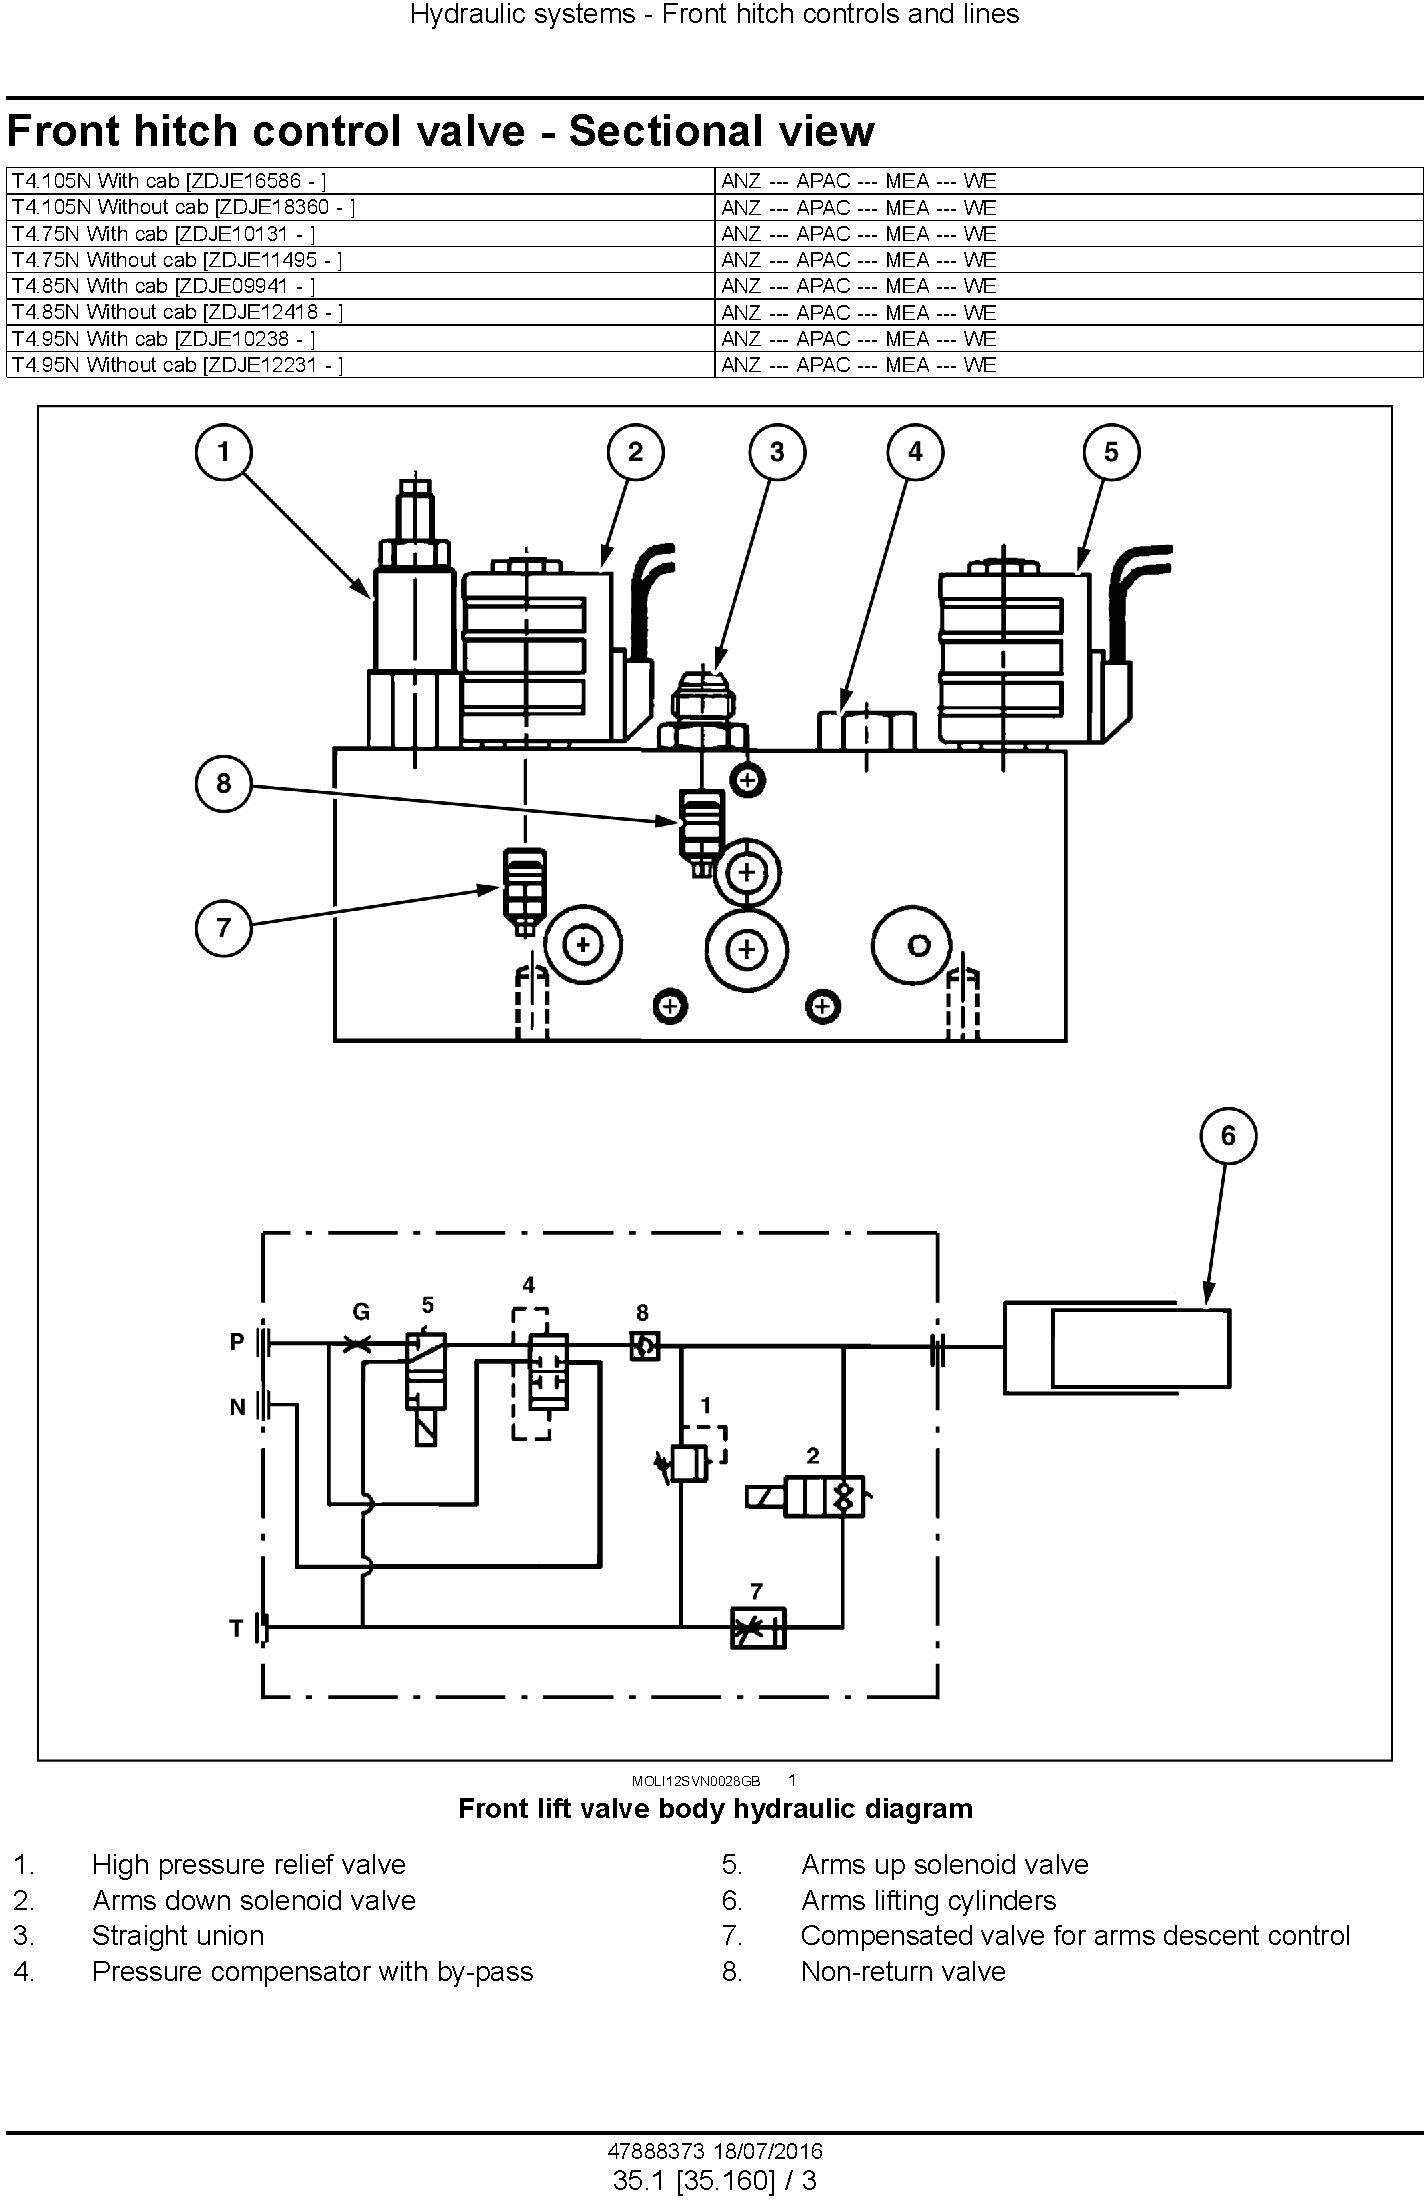 New Holland T4.75N T4.85N T4.95N T4.105N; T4.65V T4.75V T4.85V T4.95V T4.105V Tractor Service Manual - 2